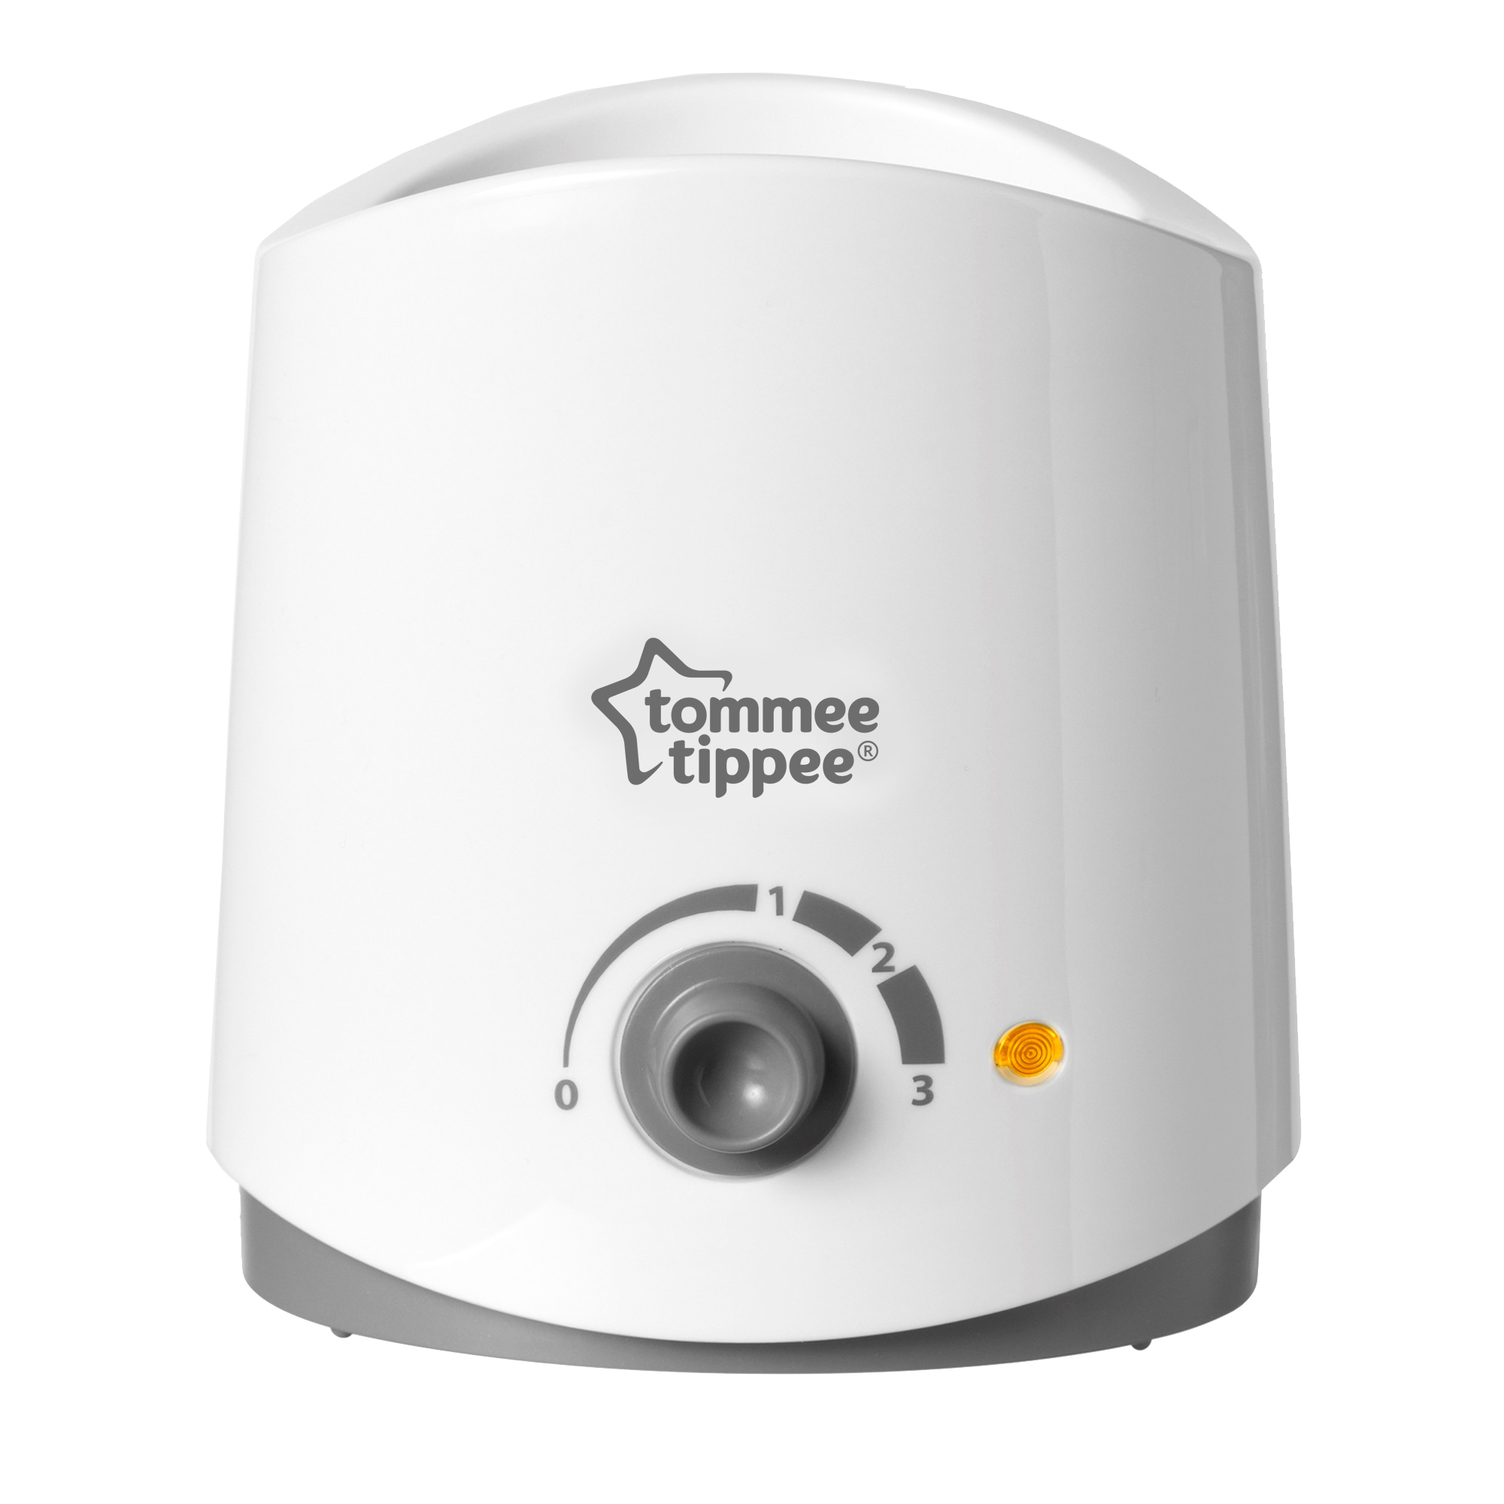 Tommee Tippee Closer to Nature Electric Food and Baby Bottle Warmer, White by Tommee Tippee